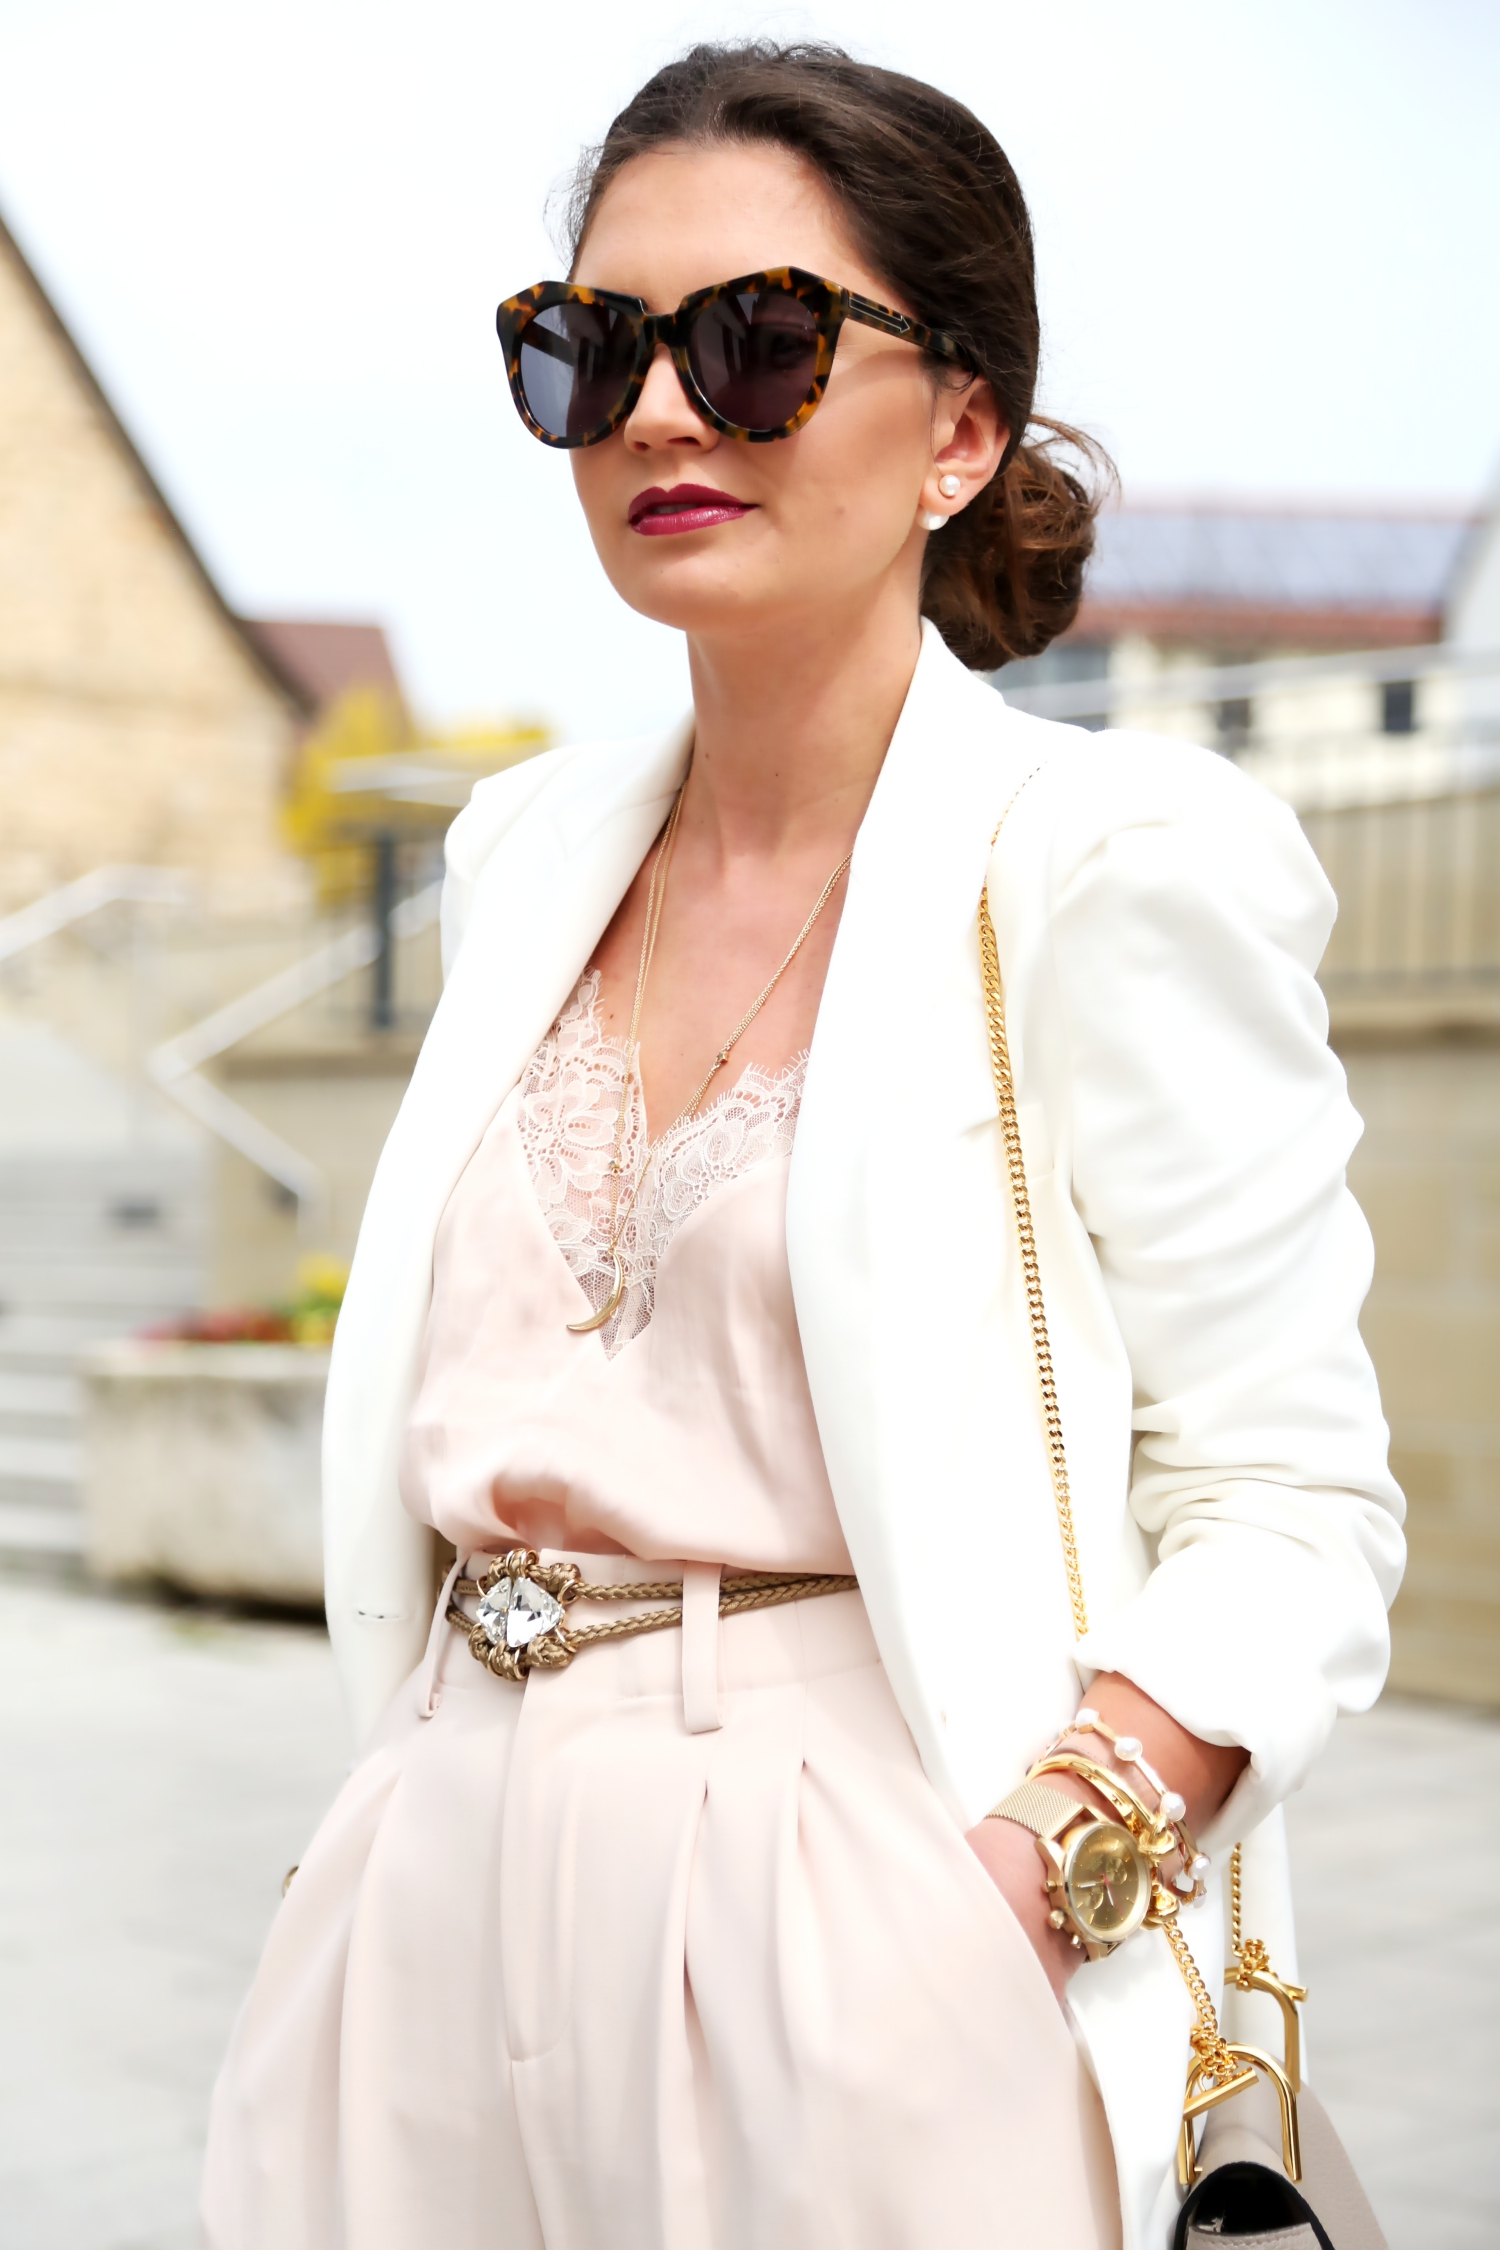 outfit-details-pastels-white-pink-spring-look-fashionhippieloves-german-fashionblogger